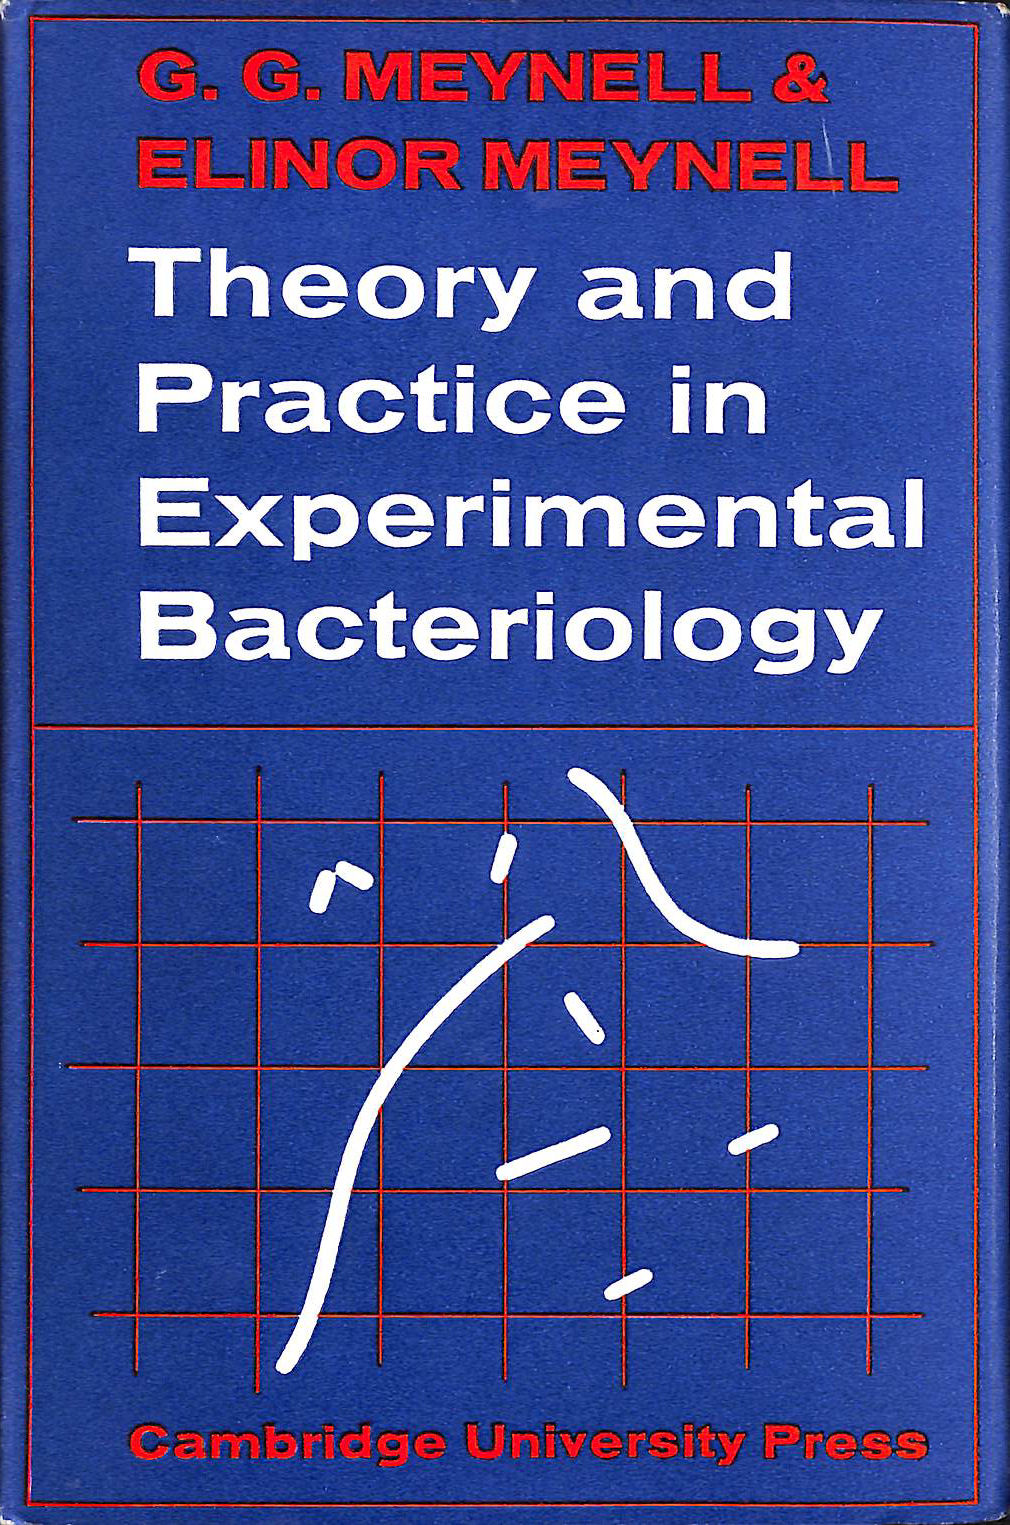 Image for Theory and Practice in Experimental Bacteriology